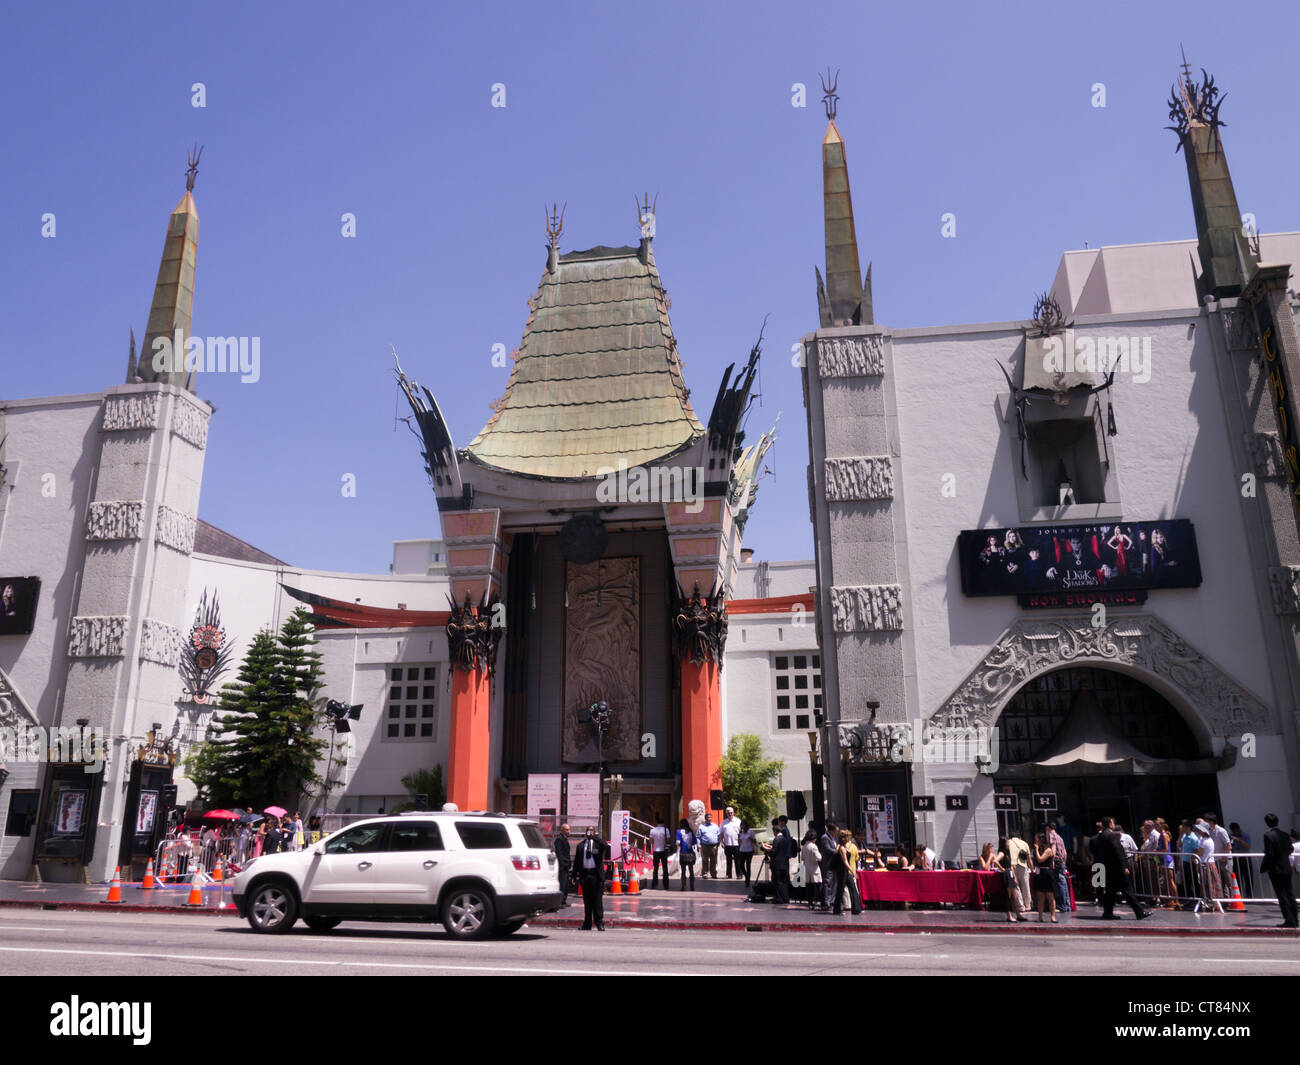 Film  premiere party at Grauman's Chinese Theatre on Hollywood boulevard, Los Angeles. - Stock Image